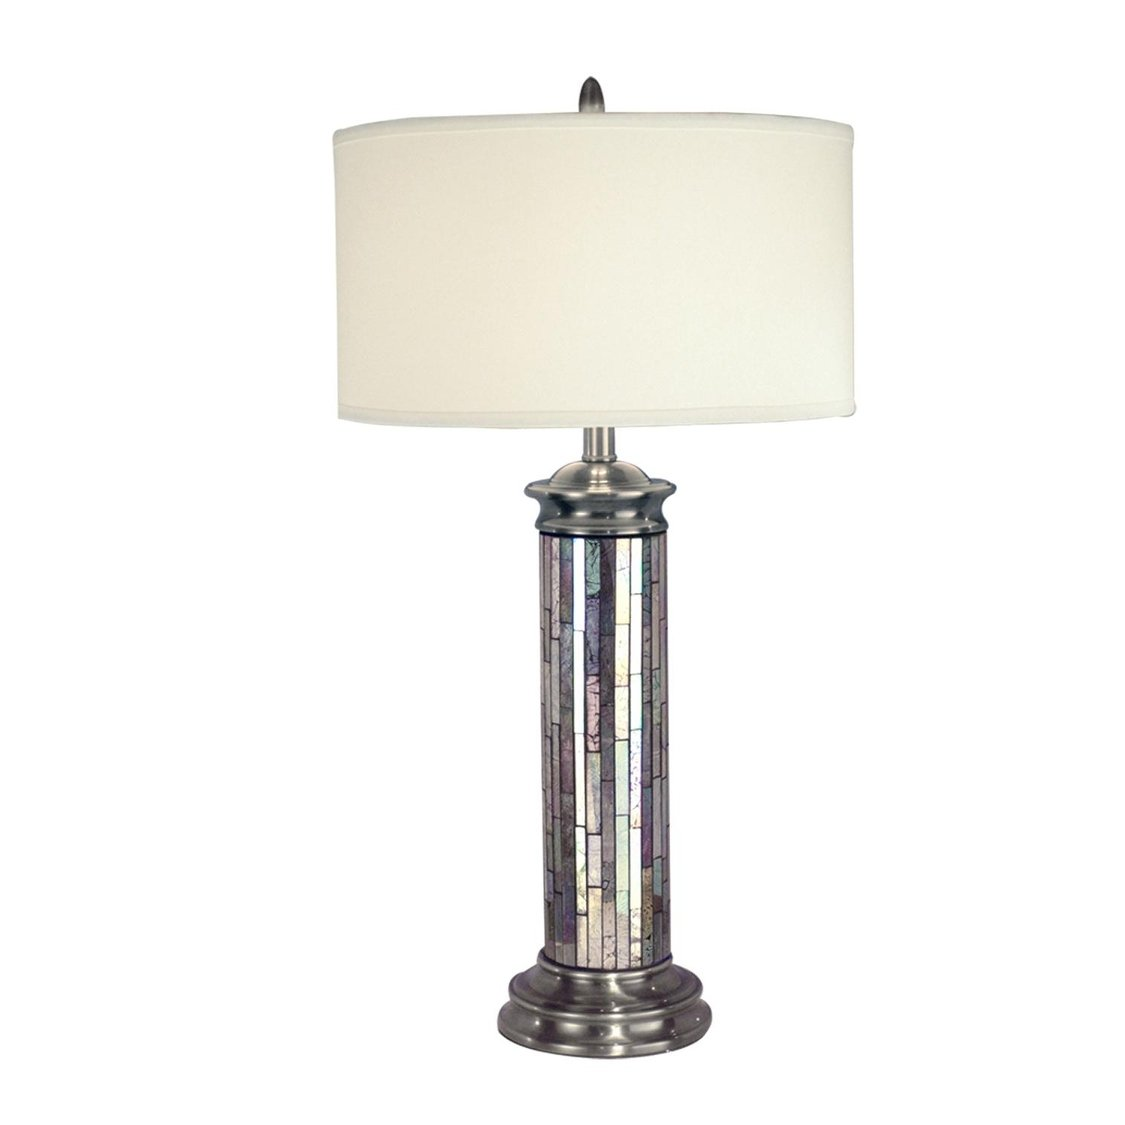 pewter gray and silver art hand crafted glass accent table lamp with crisp white drum shade free shipping today modern gold coffee ikea room ideas corner bench dining set box unit